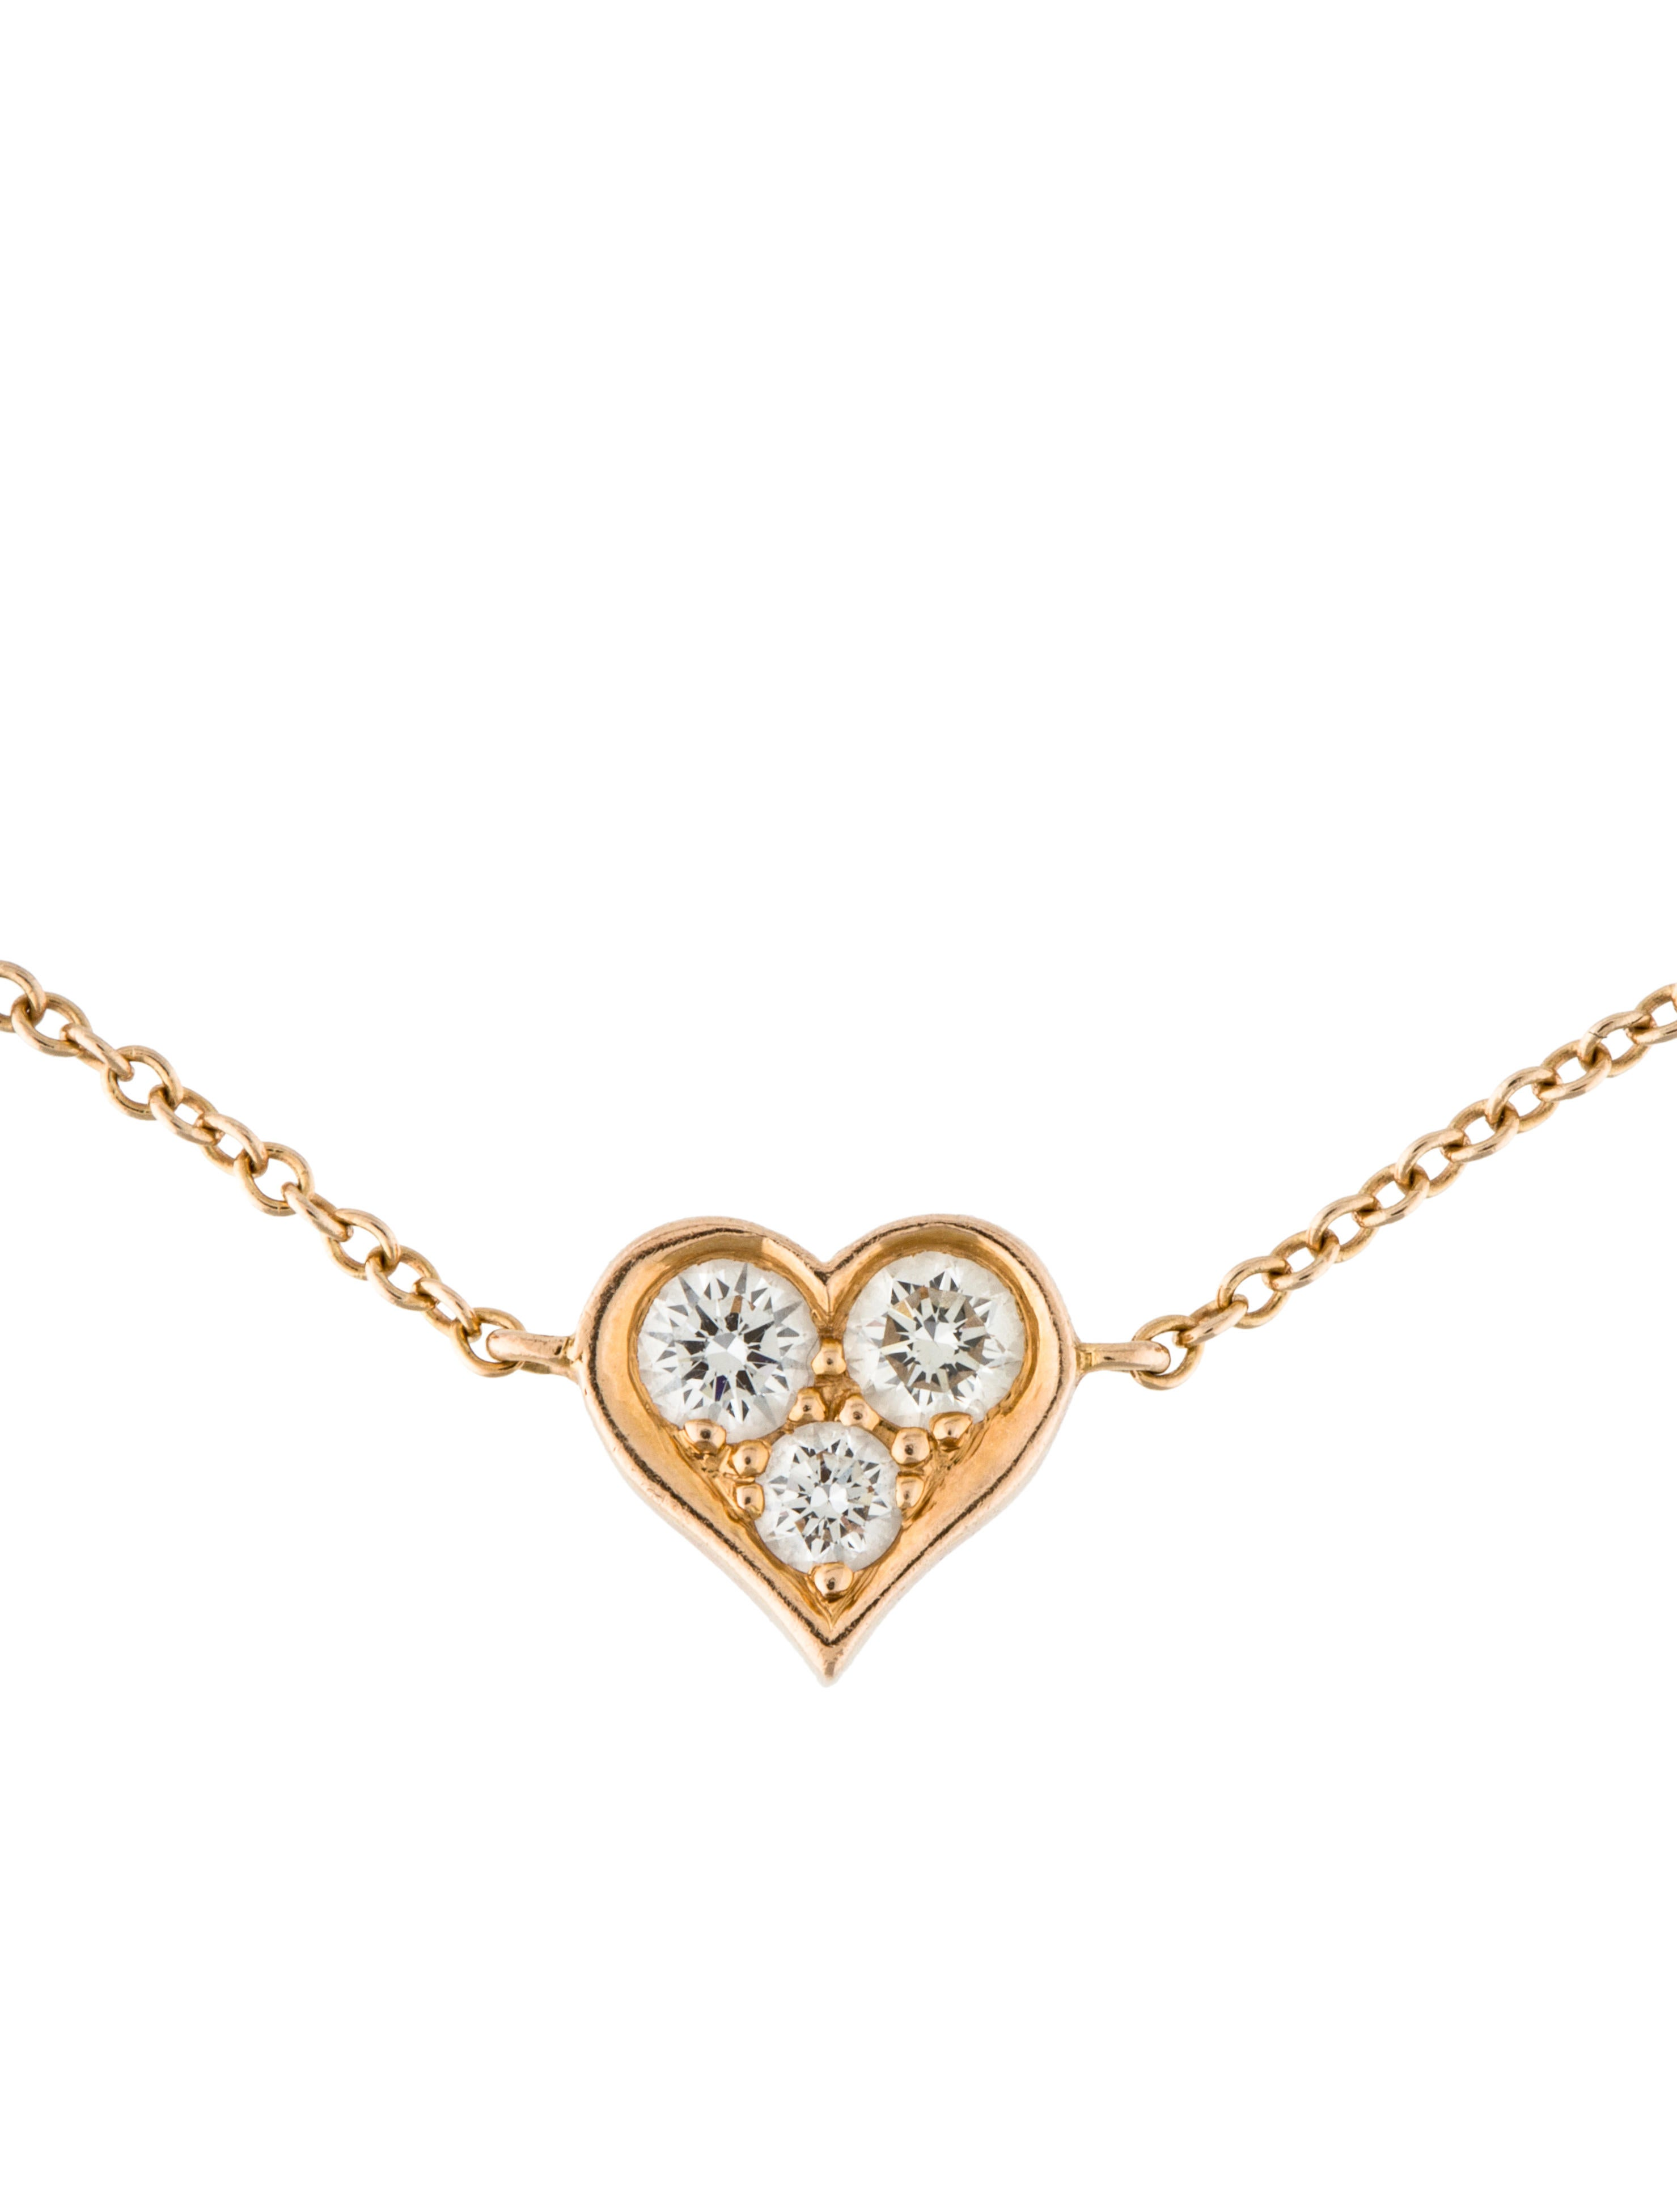 Diamond Anklet With Toe Ring Lc00035 In Anklets From: Tiffany & Co. Diamond Heart Bracelet